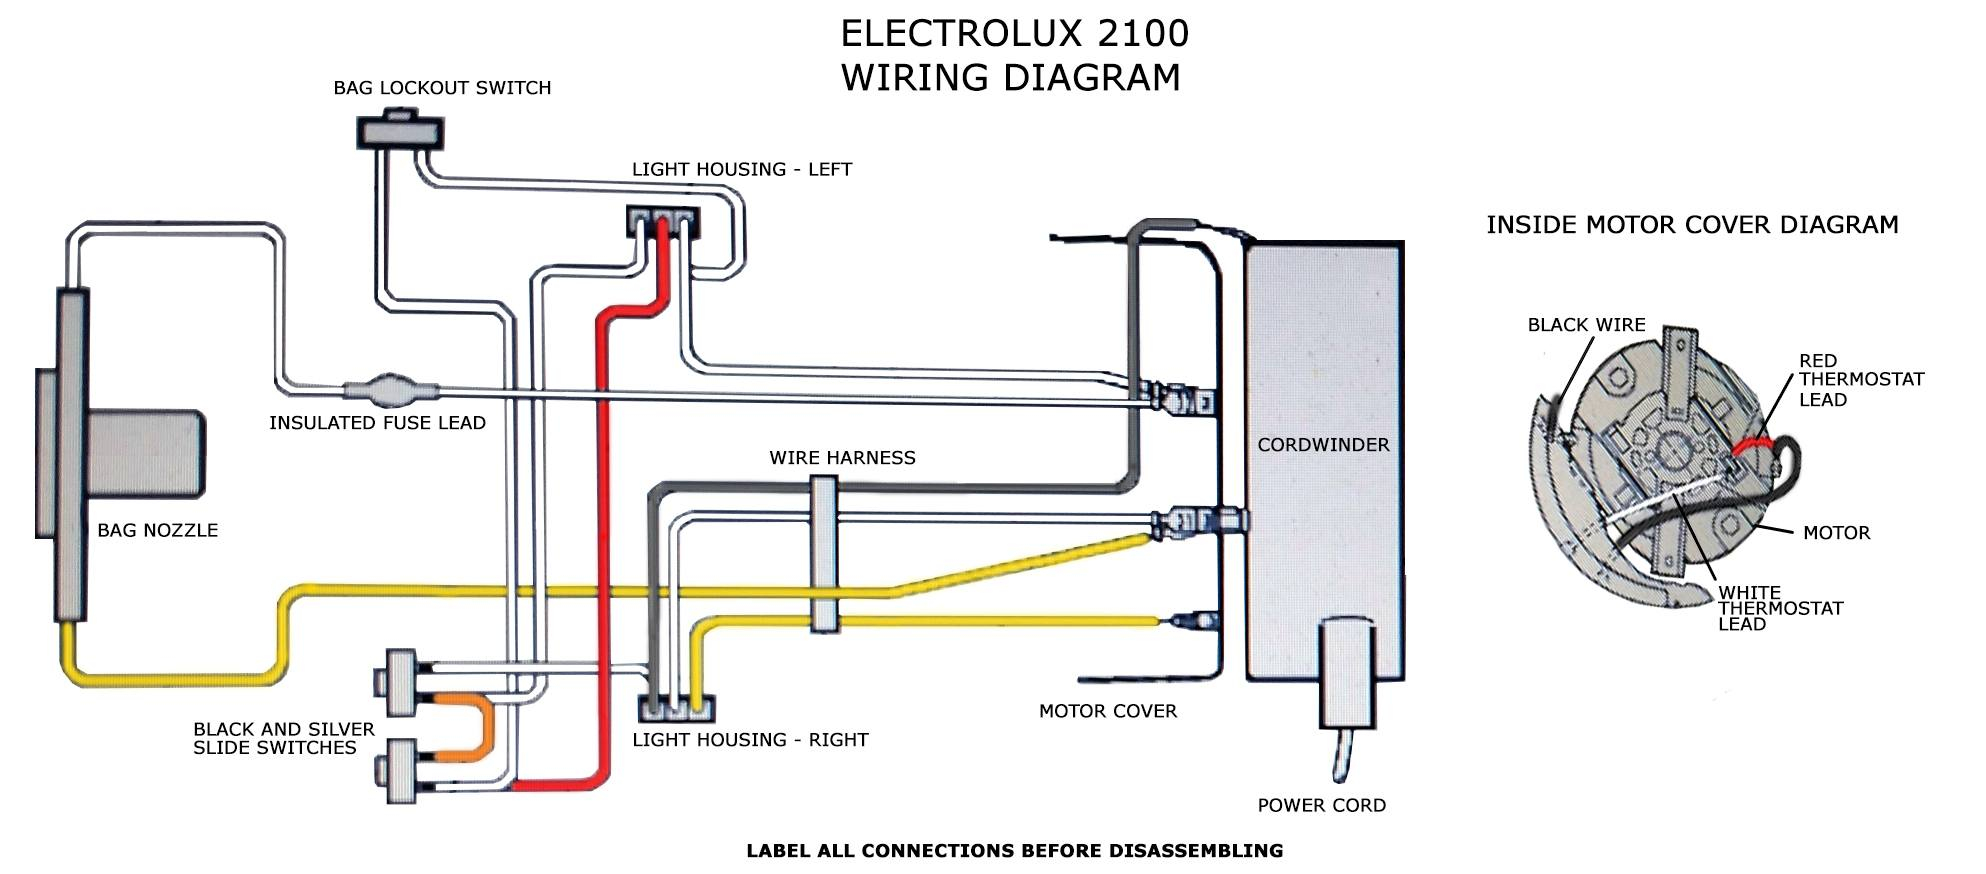 Electrolux 4000 Wiring Diagram - Zapkrel Mohammedshrine ... on electrolux double oven schematic, electrolux refrigerator fuse, microwave wiring schematic, electrolux refrigerator troubleshooting, electrolux vacuum parts diagram, electrolux refrigerator capacitors, electrolux wiring-diagram,